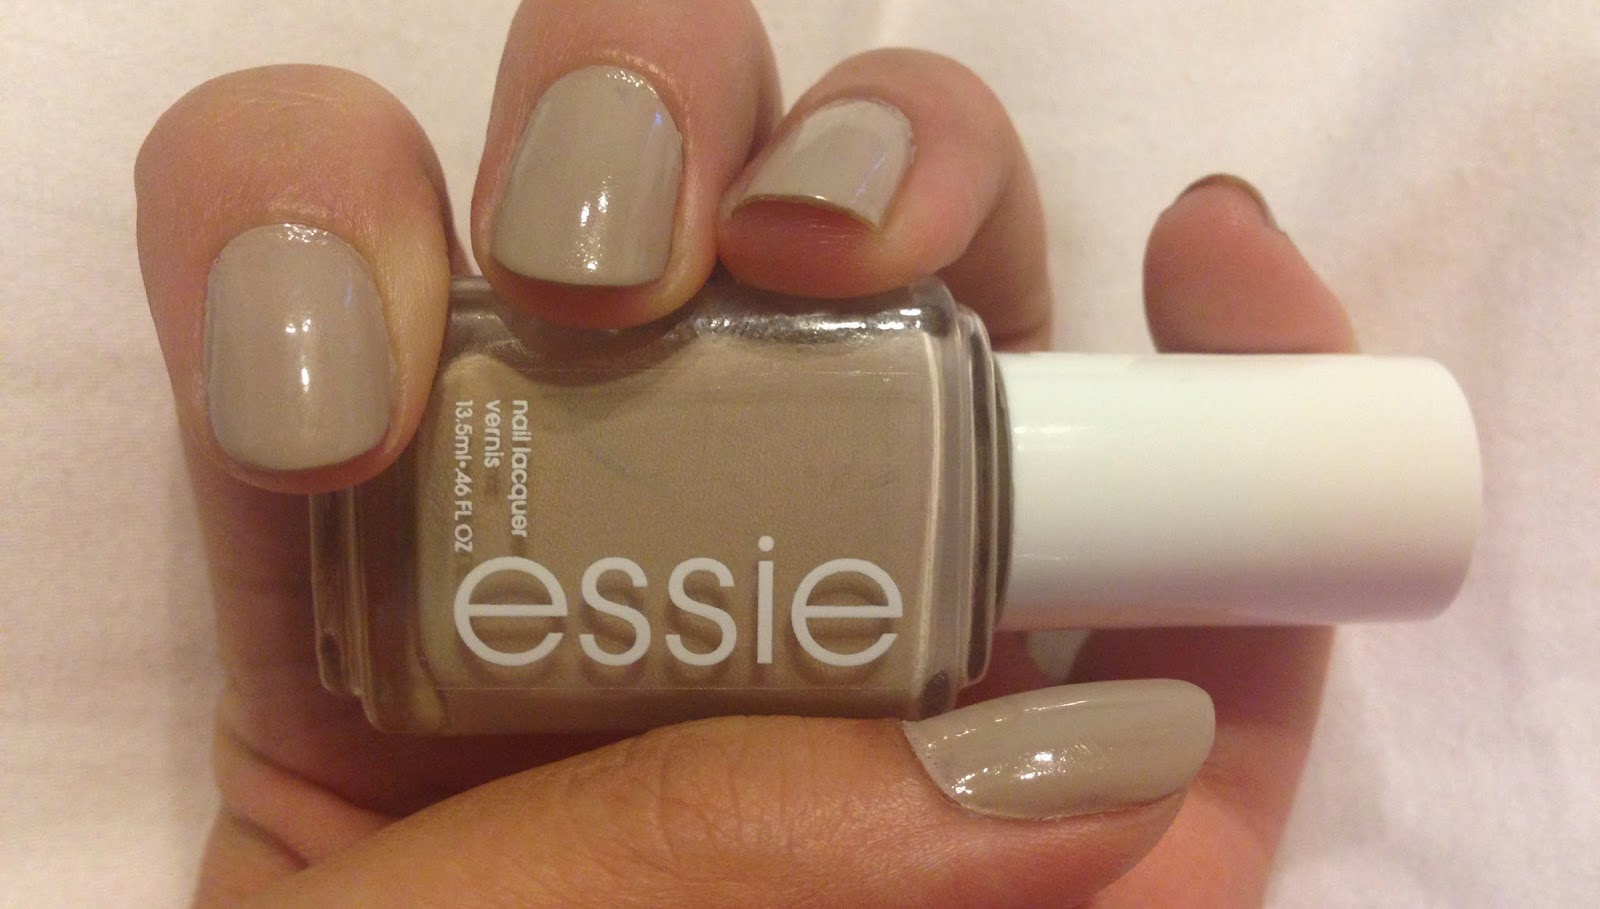 lovelifeoutloud: Nails of the Week #6: Essie Sand Tropez